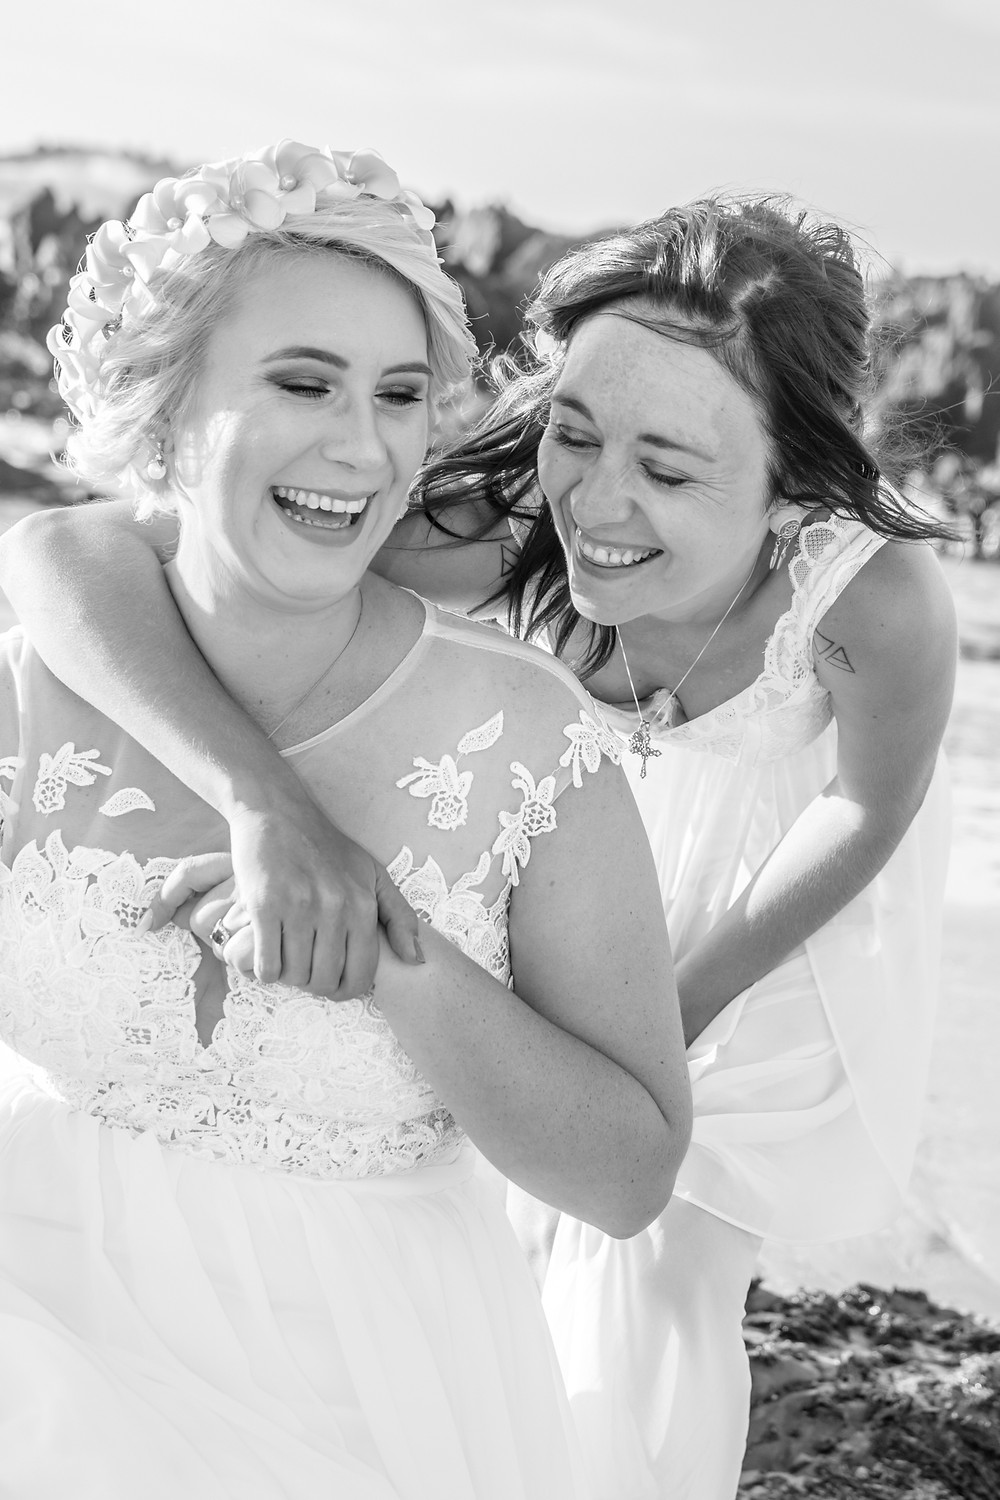 A candid moment of laughter between bride & her bridesmaid